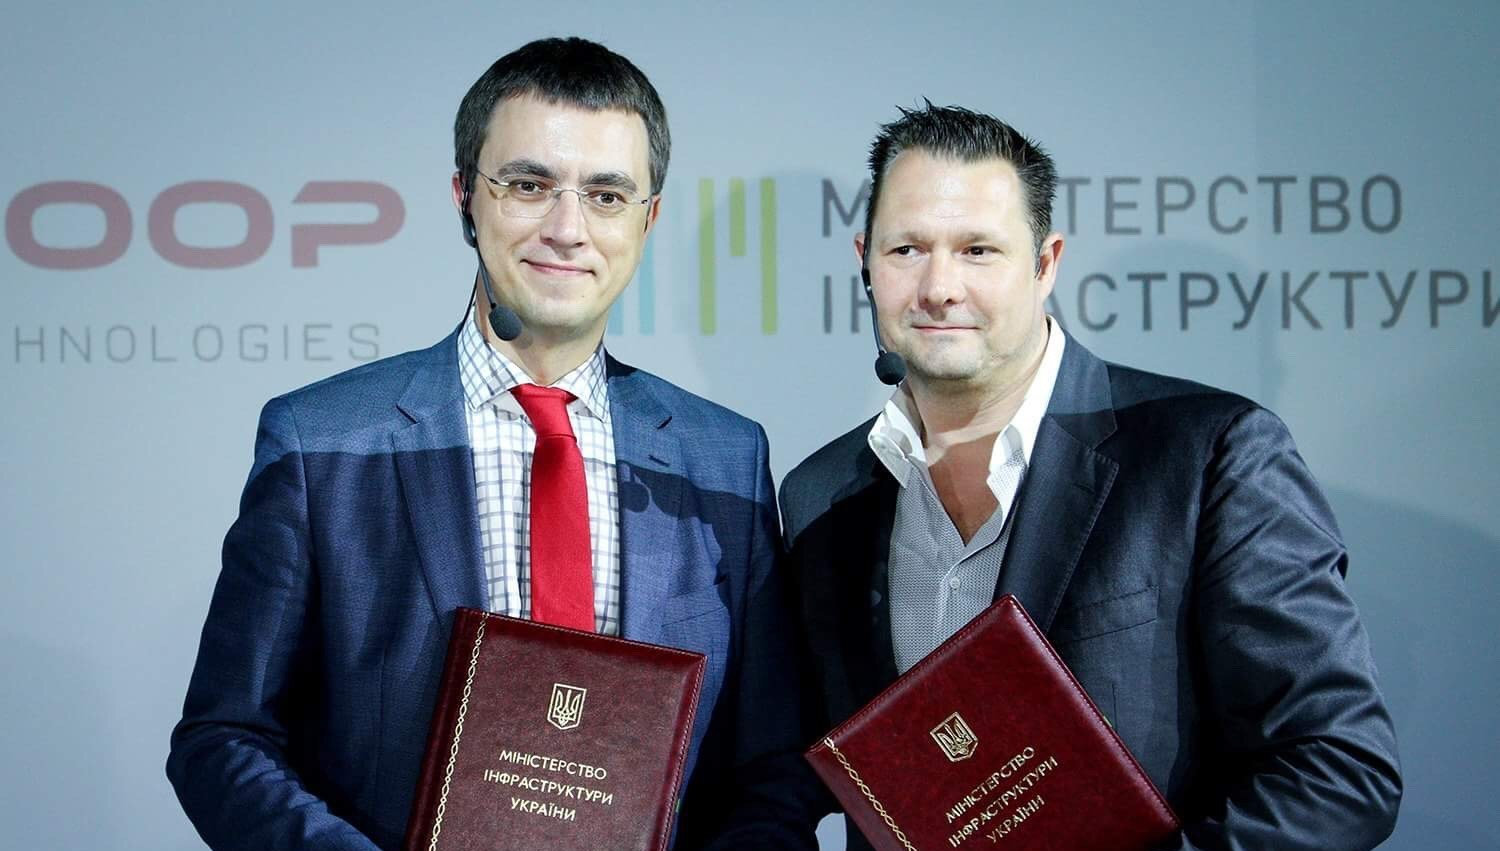 Hyperloop Transportation signs agreement for commercial system in Ukraine